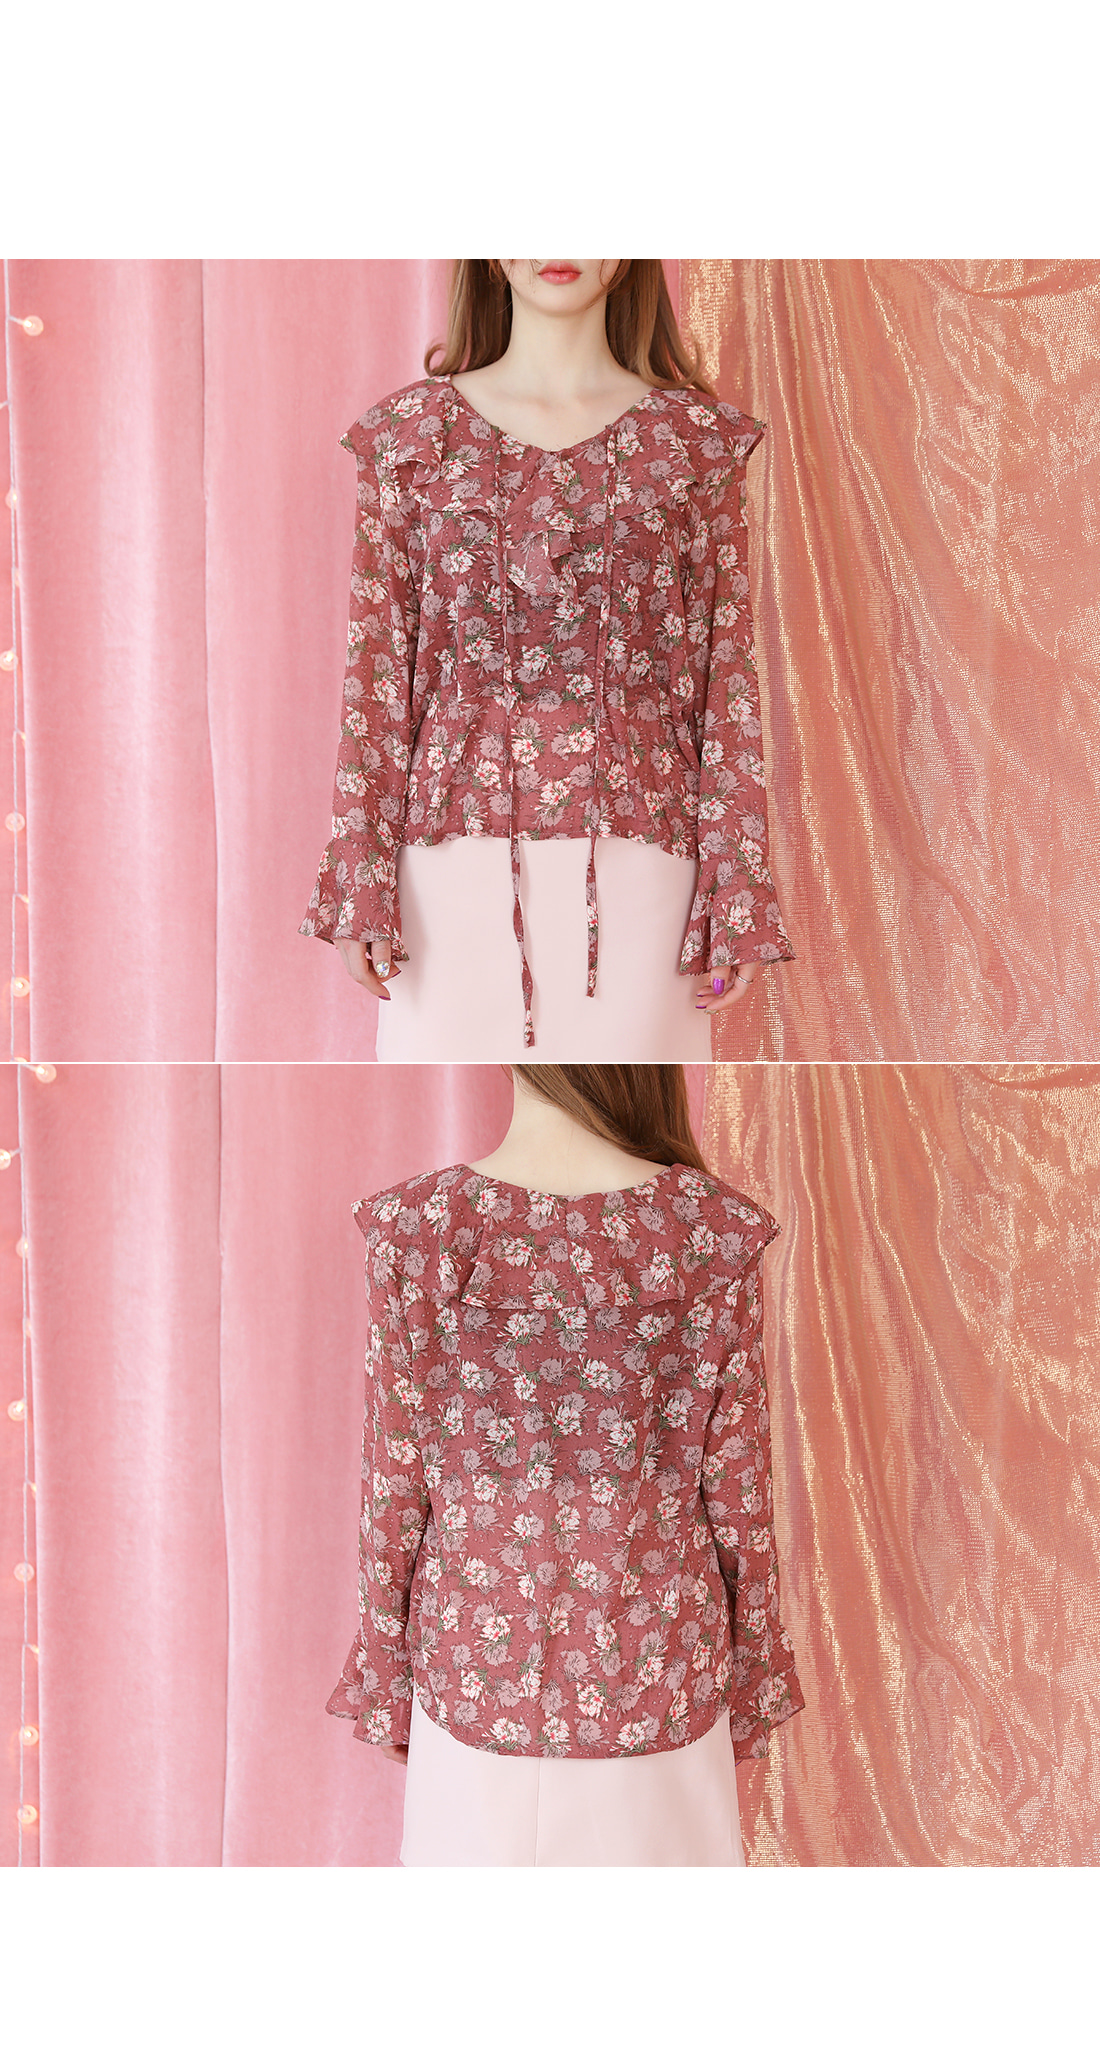 WAXFLOWER RUFFLE BLOUSE